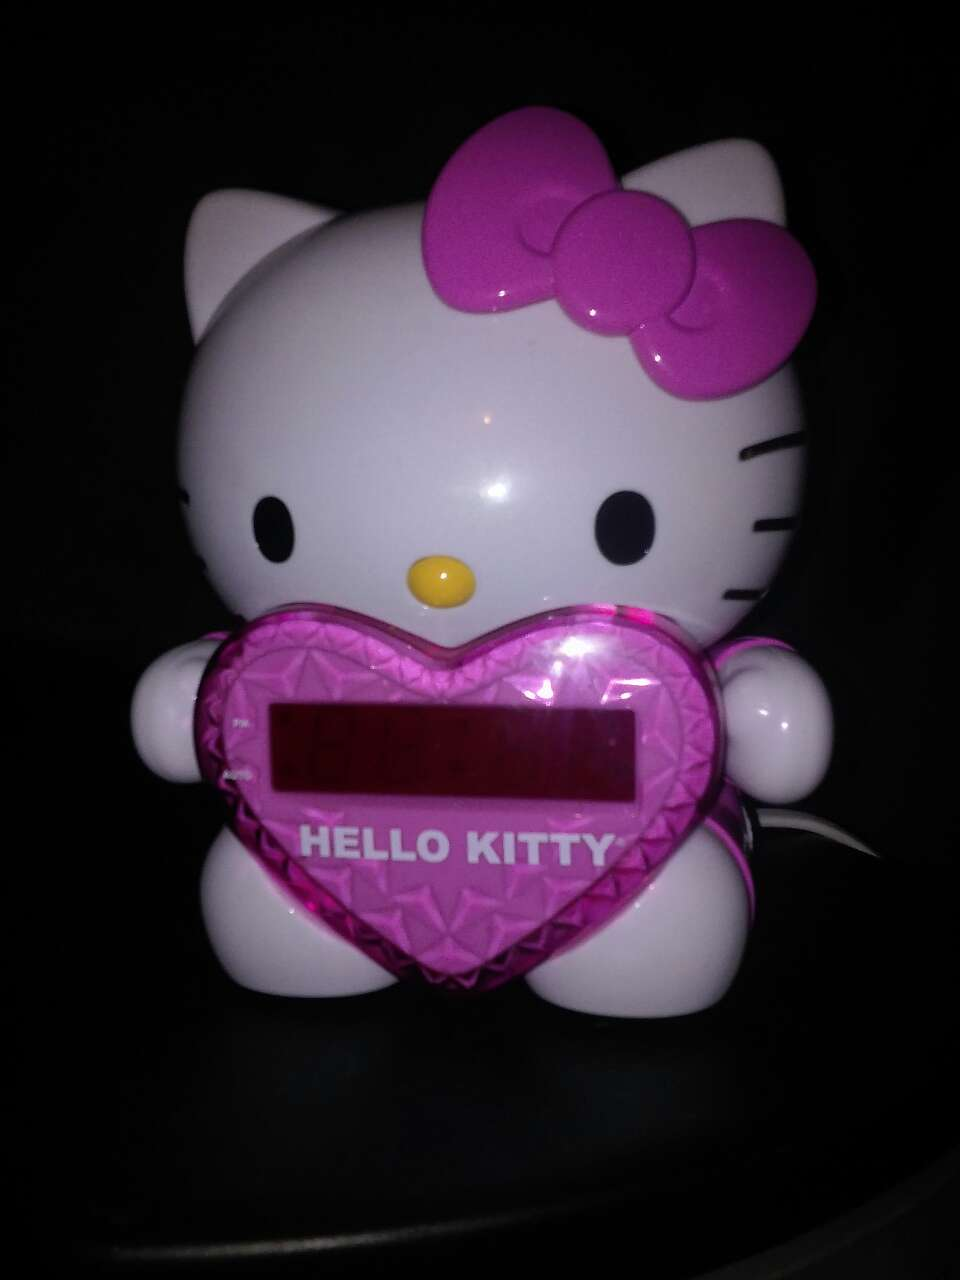 hello kitty projection alarm clock Hello kitty projection clock w am/fm radio wake to radio or alarm,120degree projection of time on wall or ceiling 15mm red led display rotary front control for time.